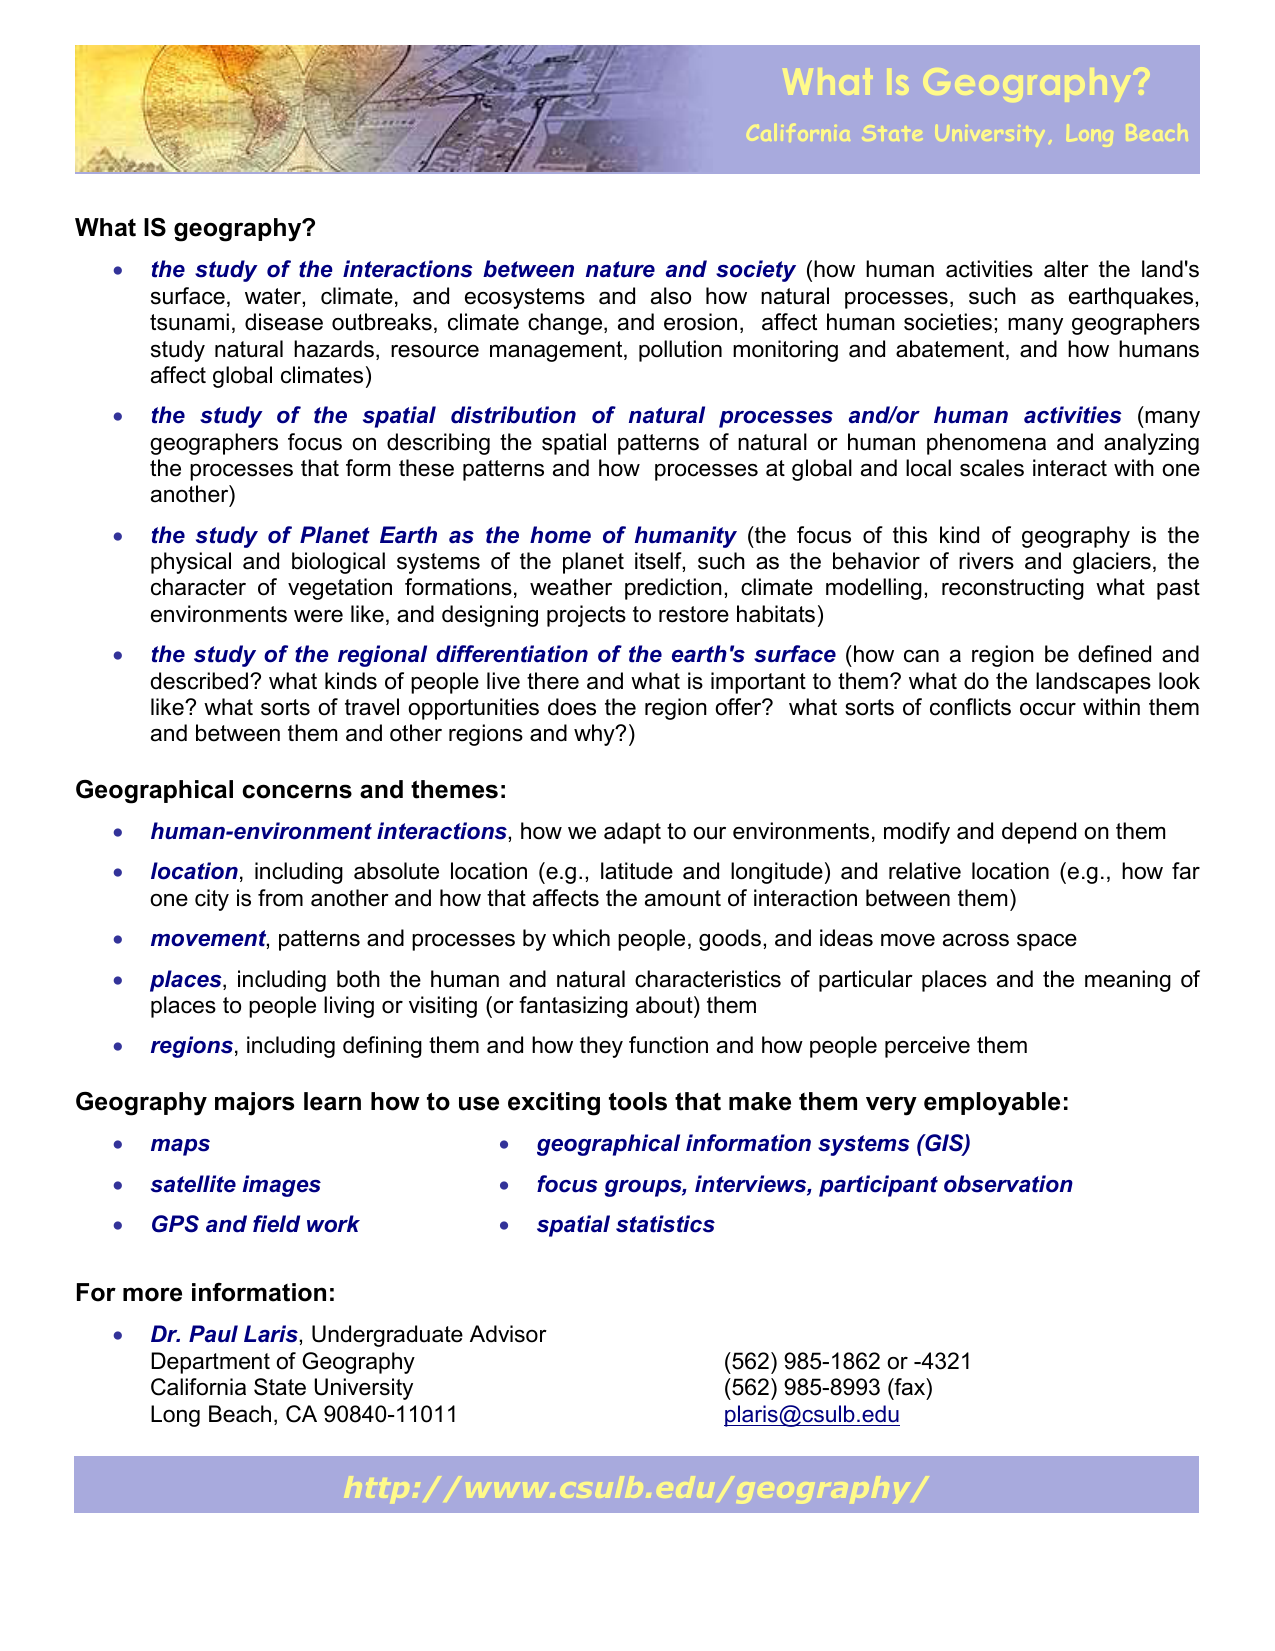 What Is Geography flyer - California State University, Long